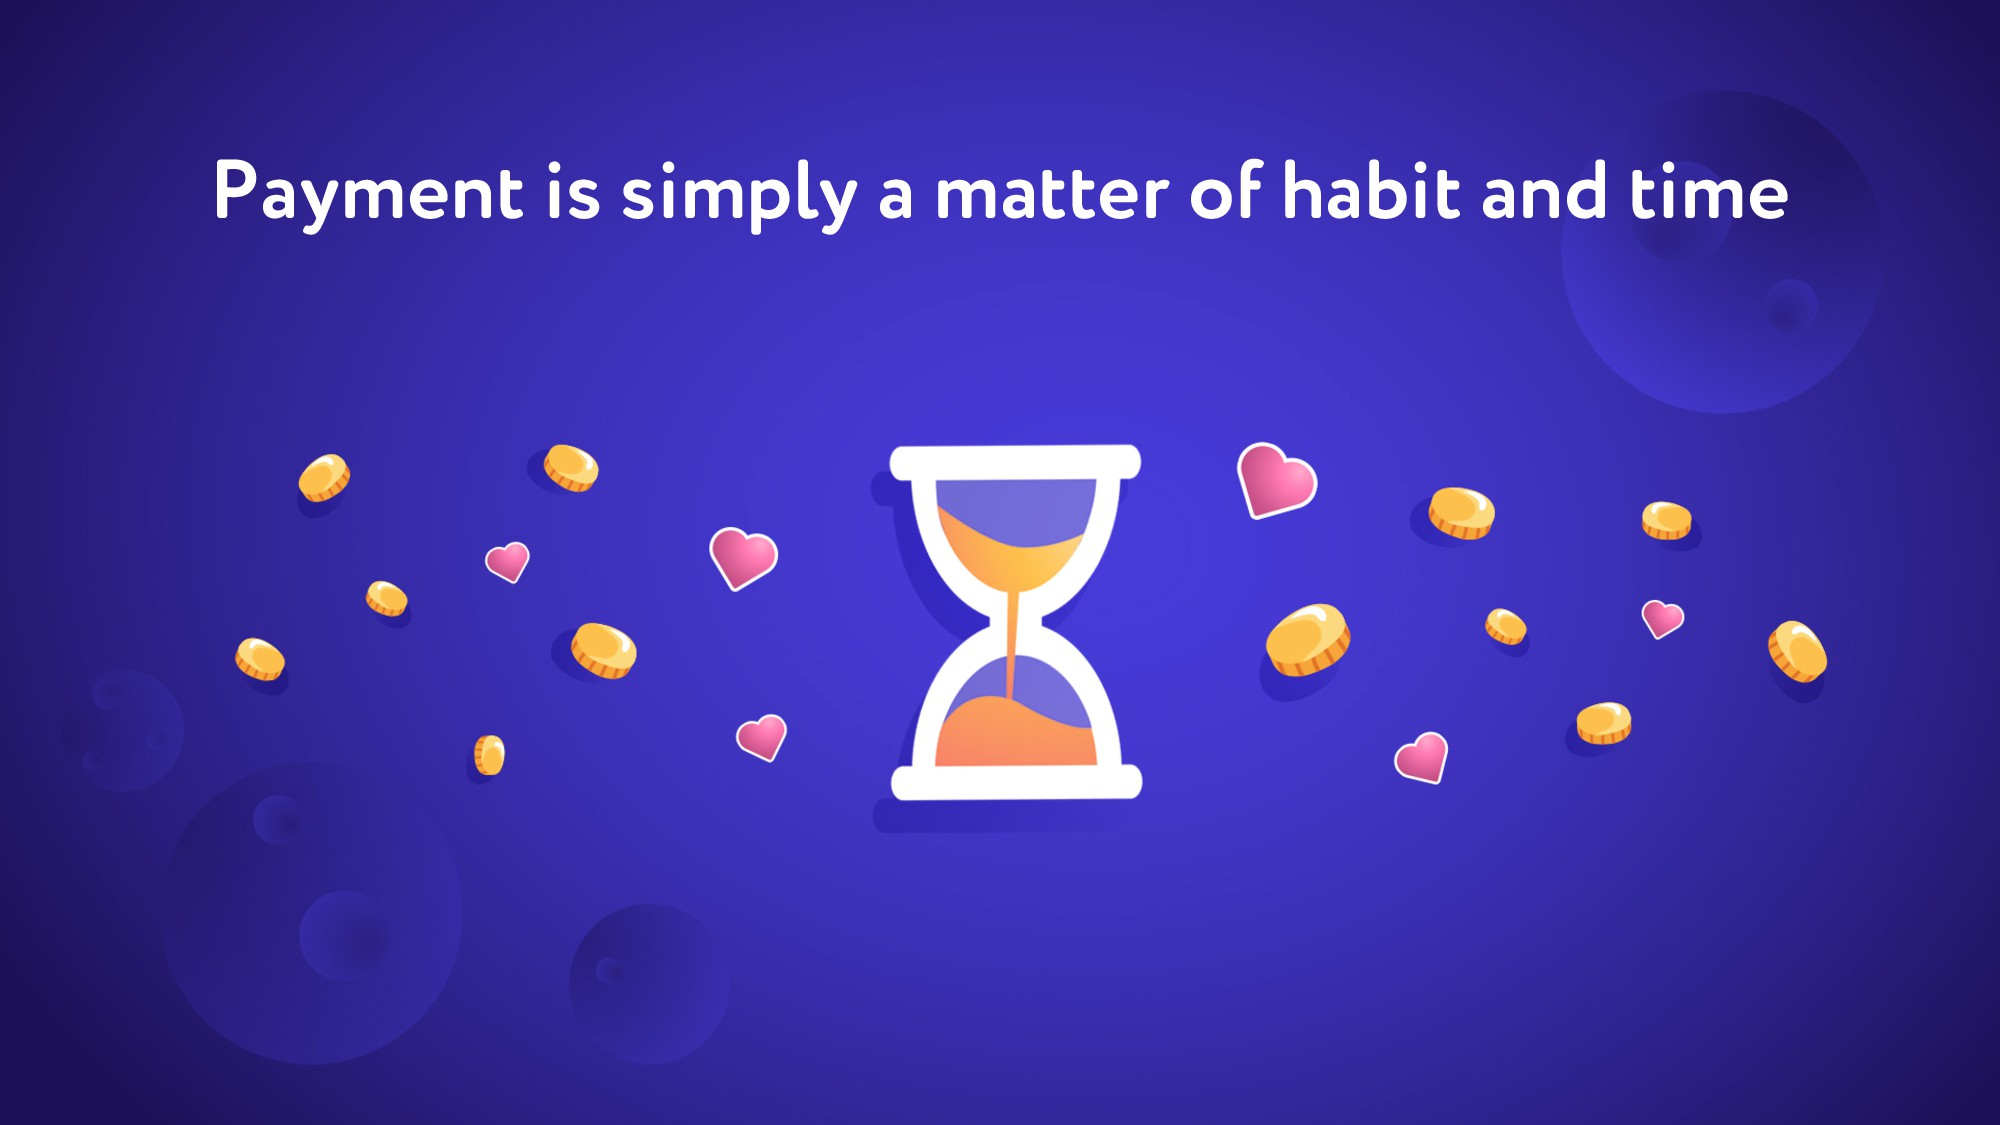 Payment is simply a matter of habit and time